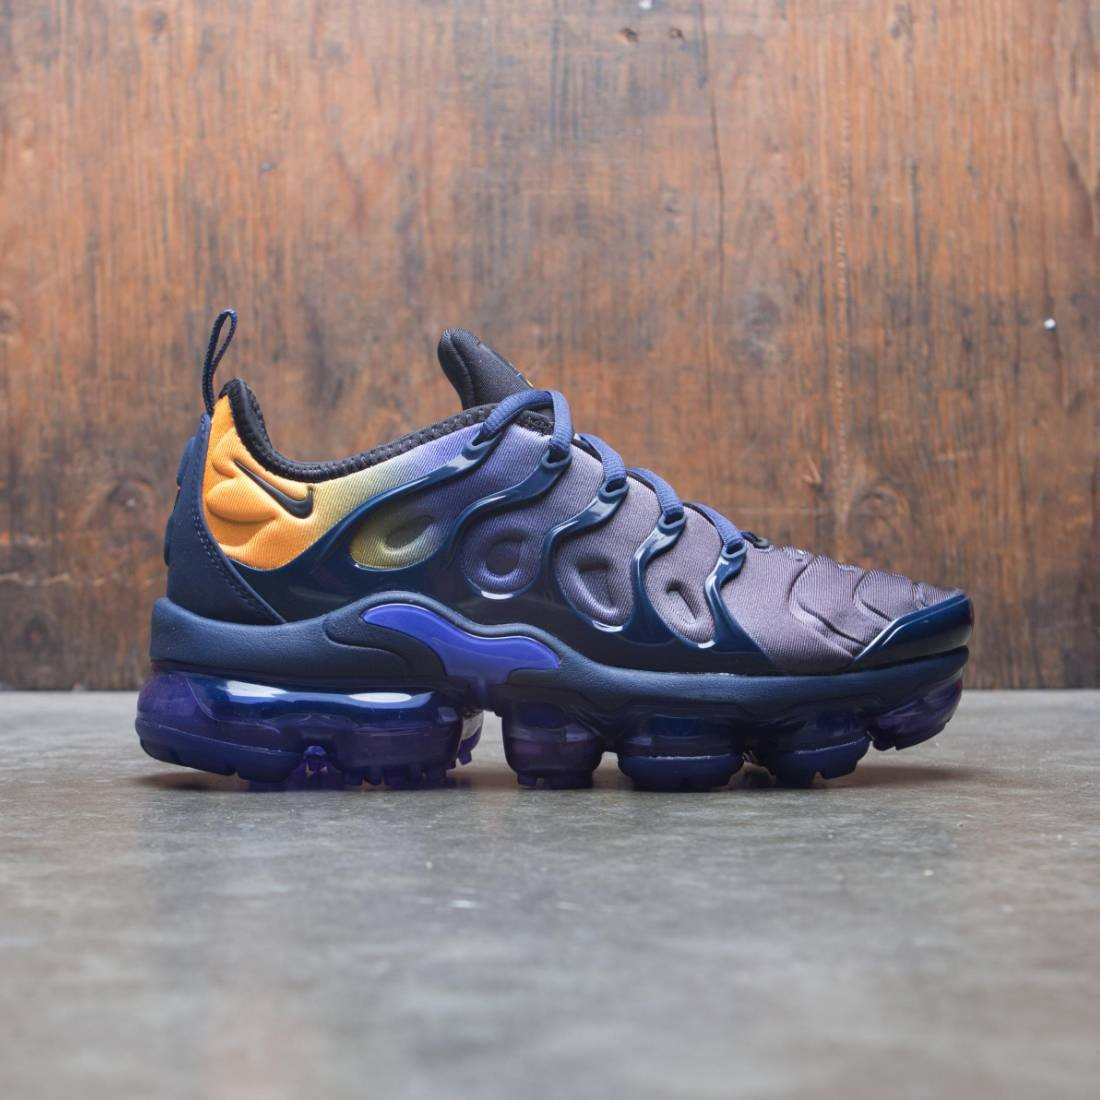 buy popular 6a6f5 ec768 Nike Women Air Vapormax Plus (persian violet / black-midnight navy)